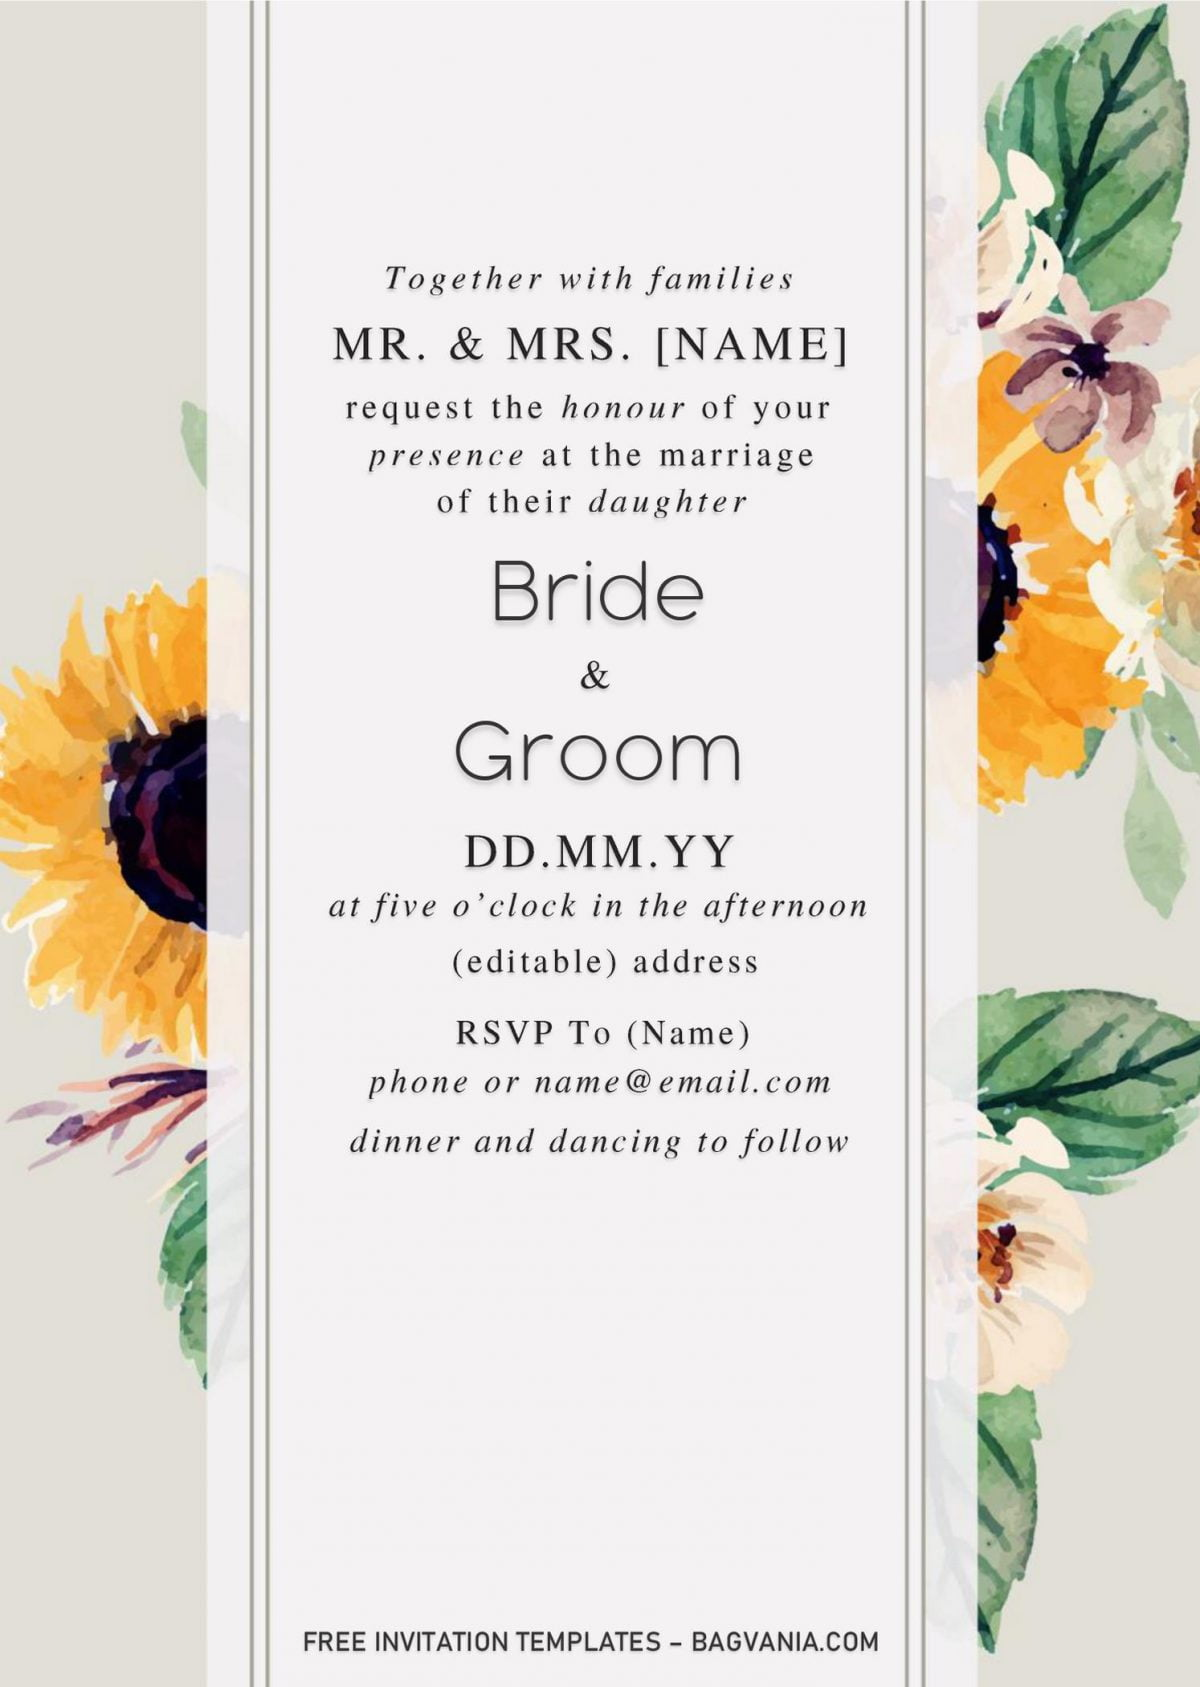 Sunflower Wedding Invitation Templates - Editable With Microsoft Word and has minimalist design